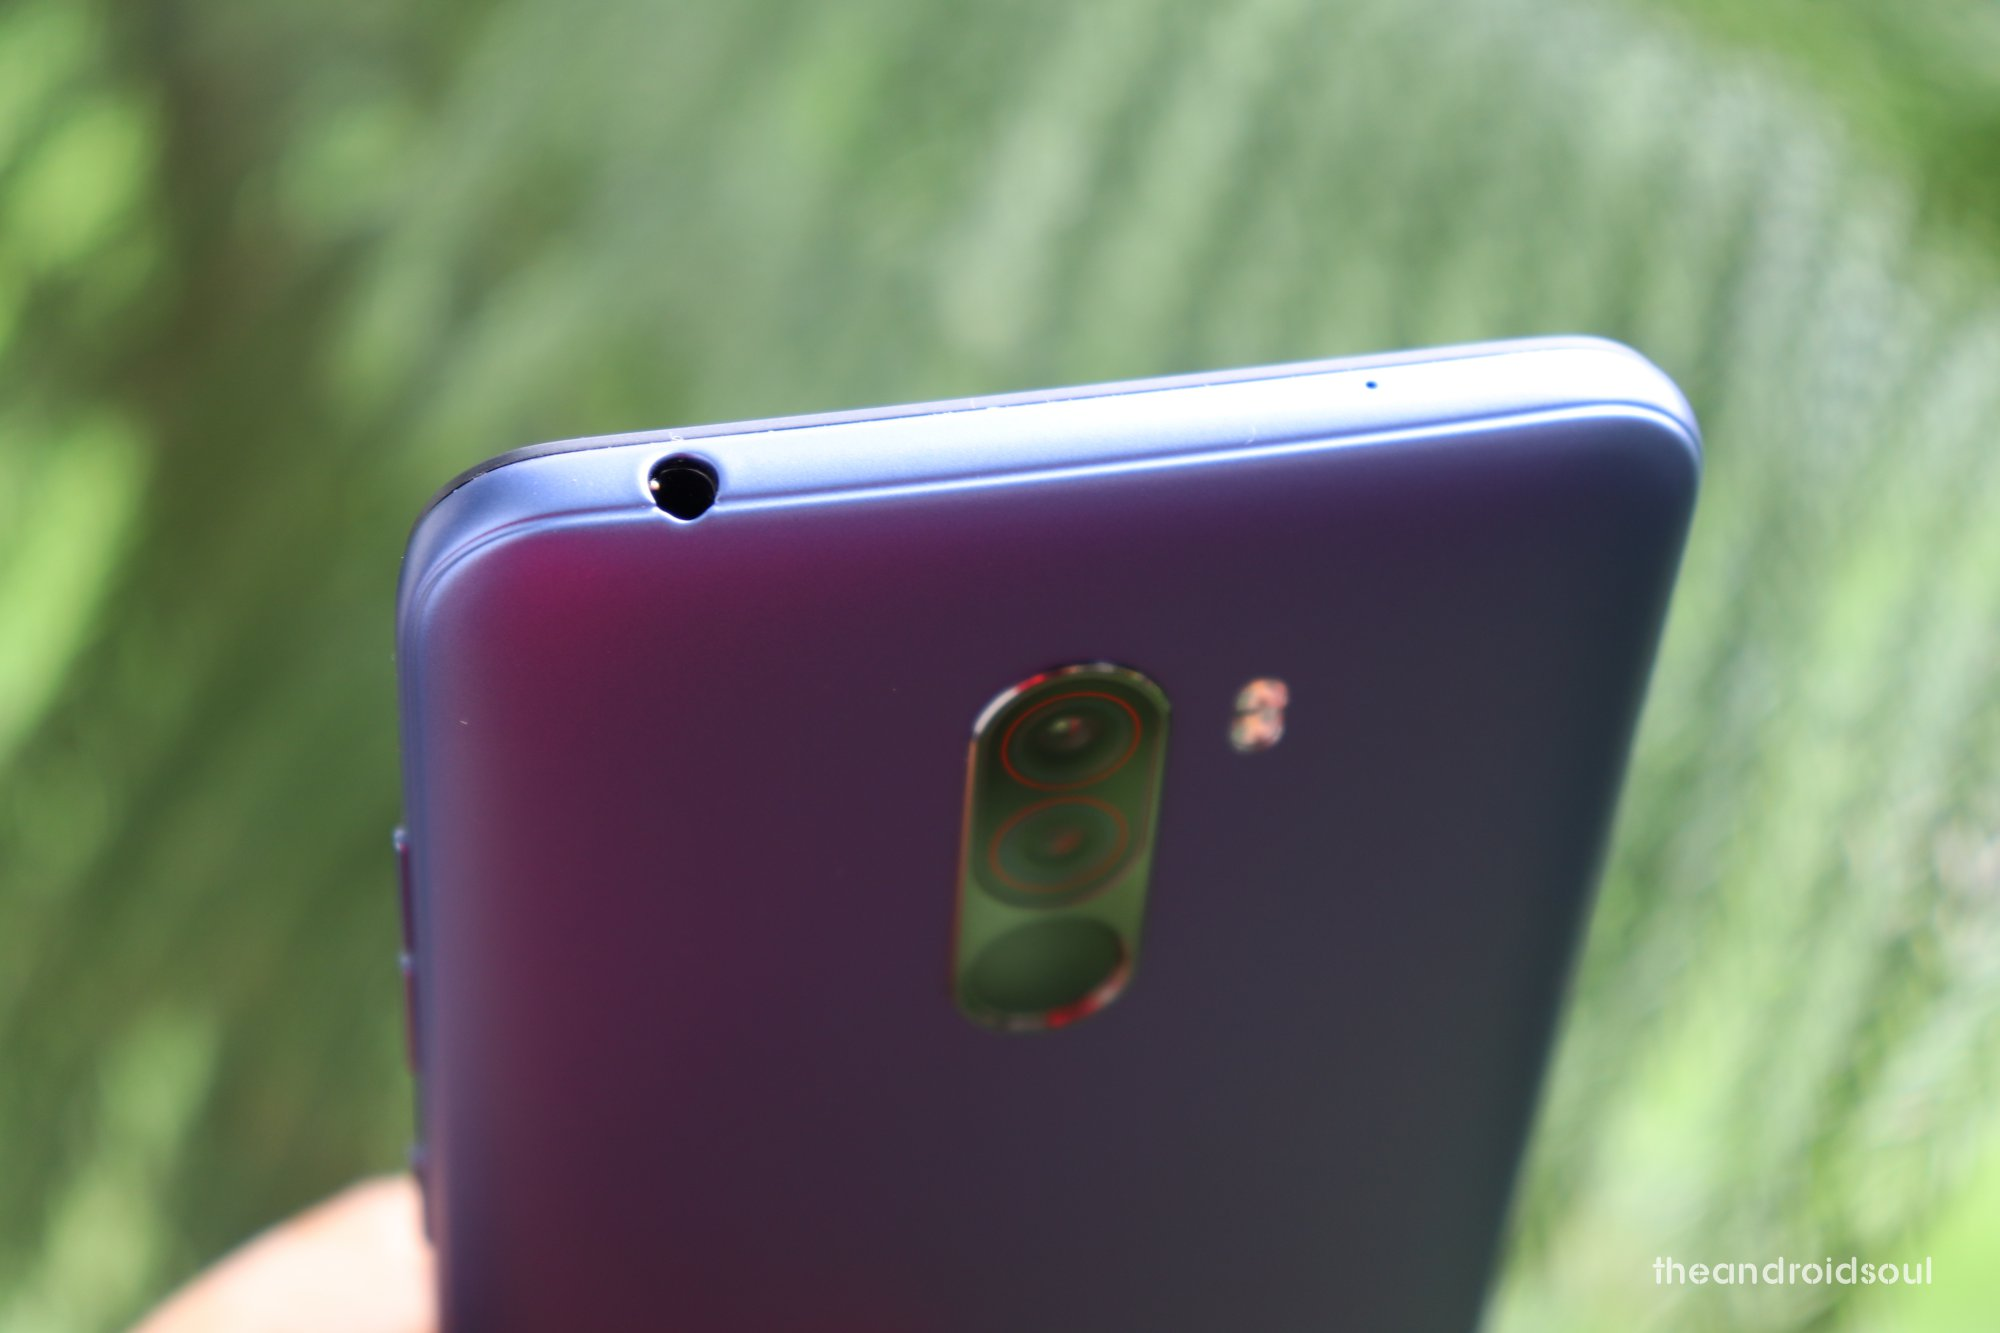 should-you-buy-poco-f1-over-oneplus-6t-camera